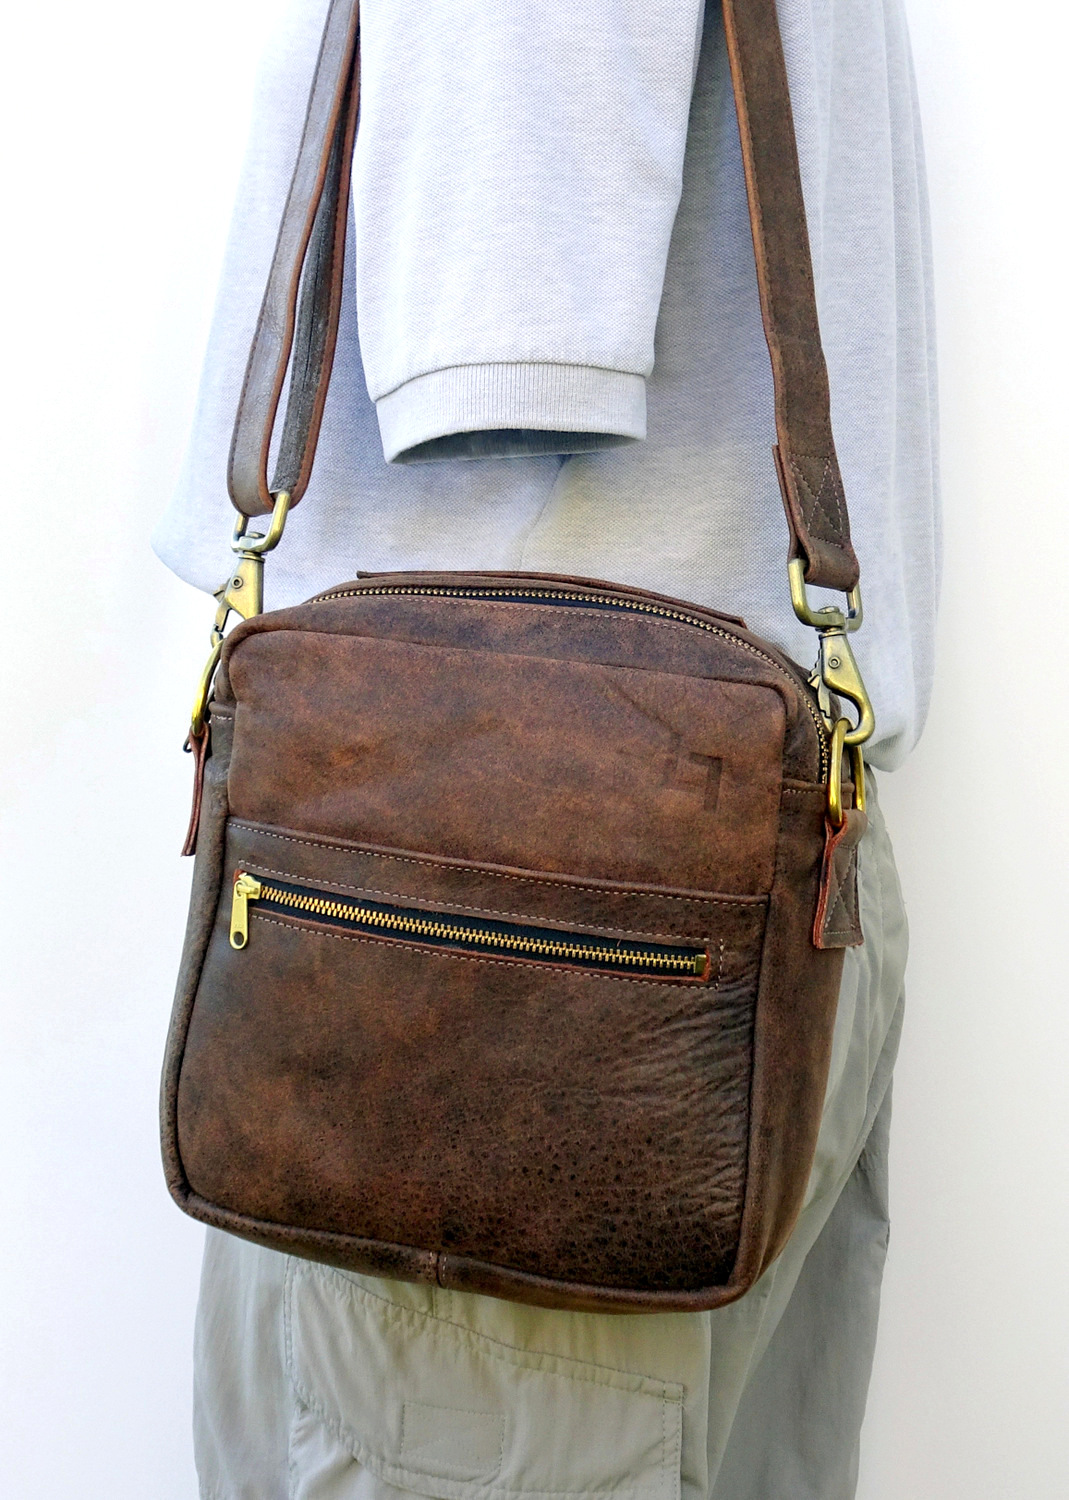 1-Handcrafted Leather Shoulder Bag, Man Up, LaPlace Leather, Memphis-004.JPG